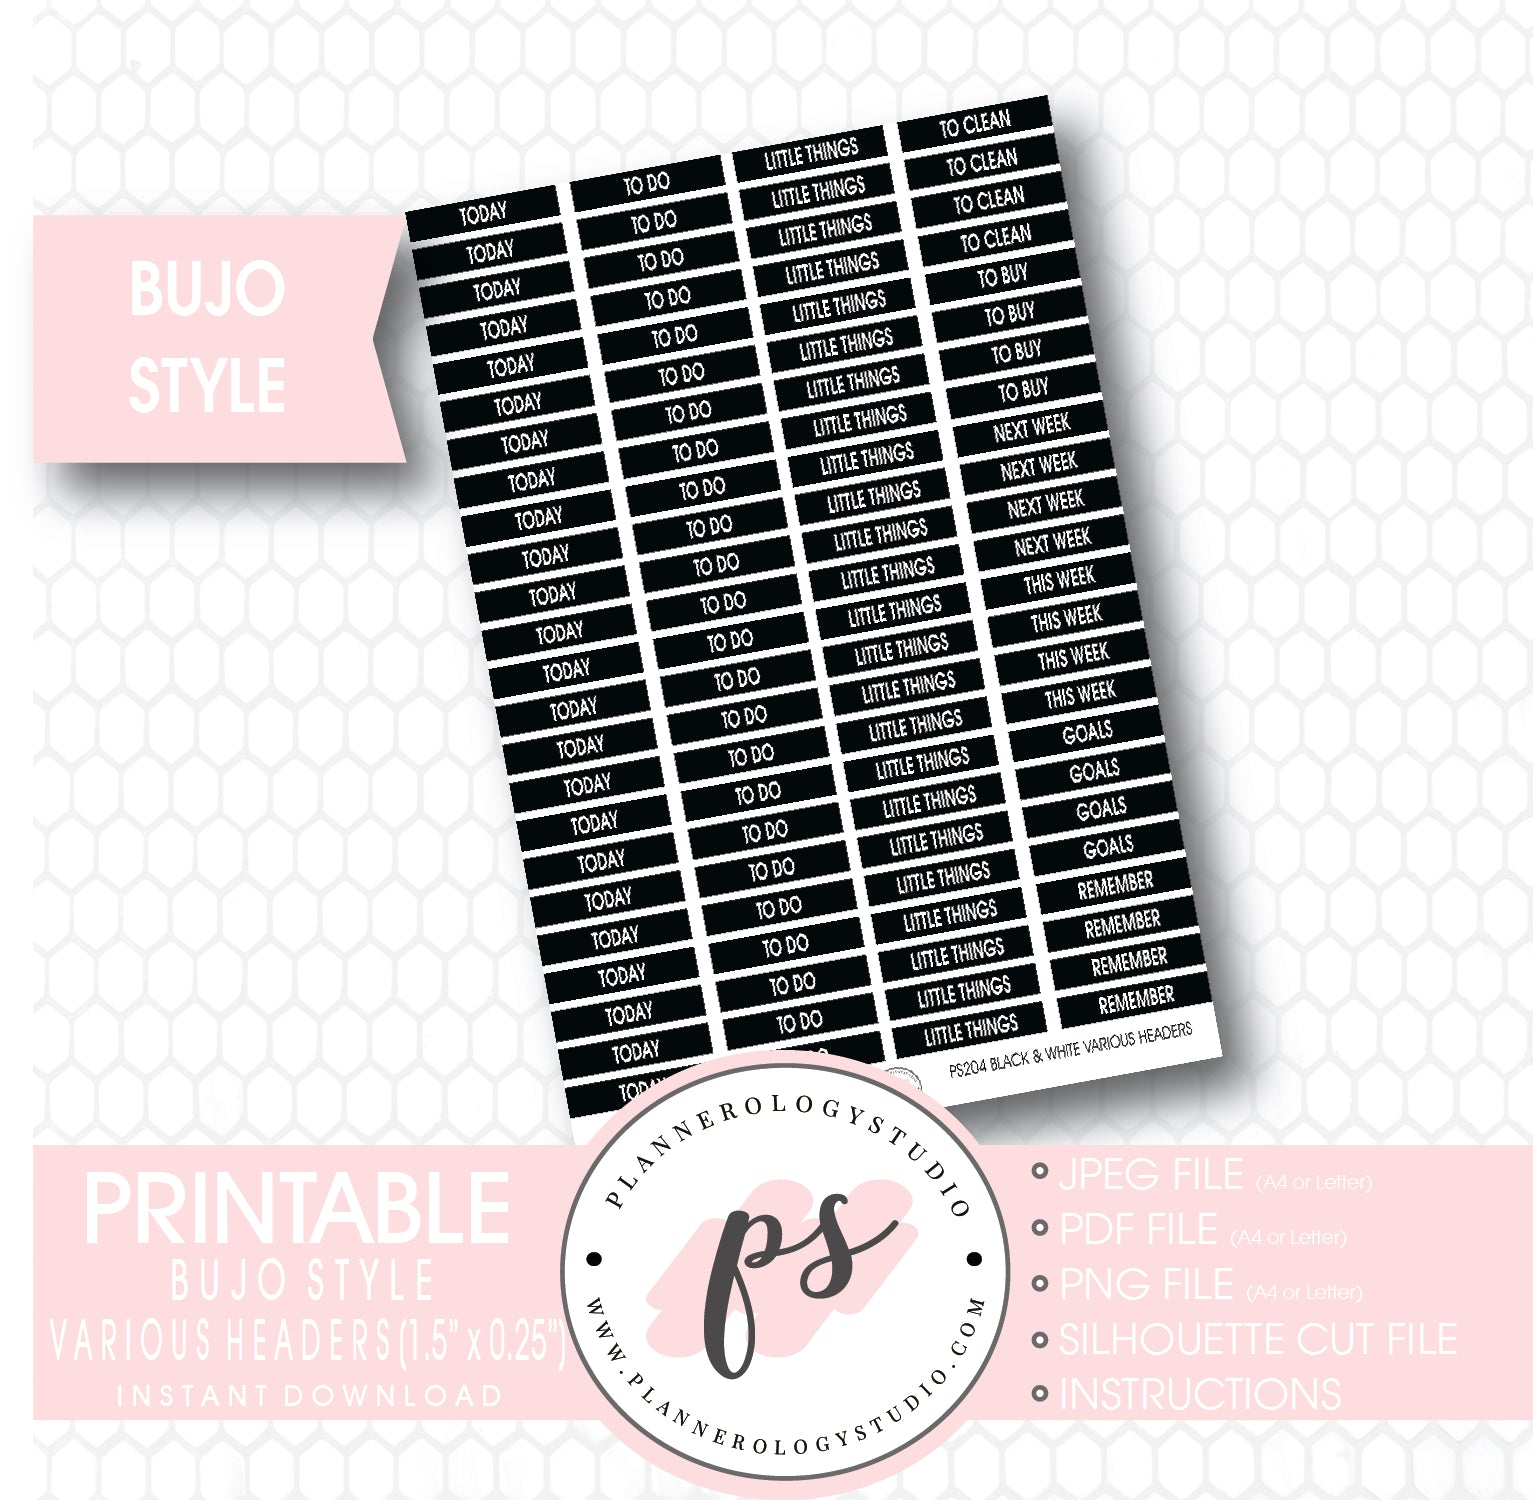 picture relating to Bullet Journal Stickers Printable titled Black White Impartial Headers (At present, Toward Do, and so on) Bullet Magazine Bujo Printable Planner Stickers